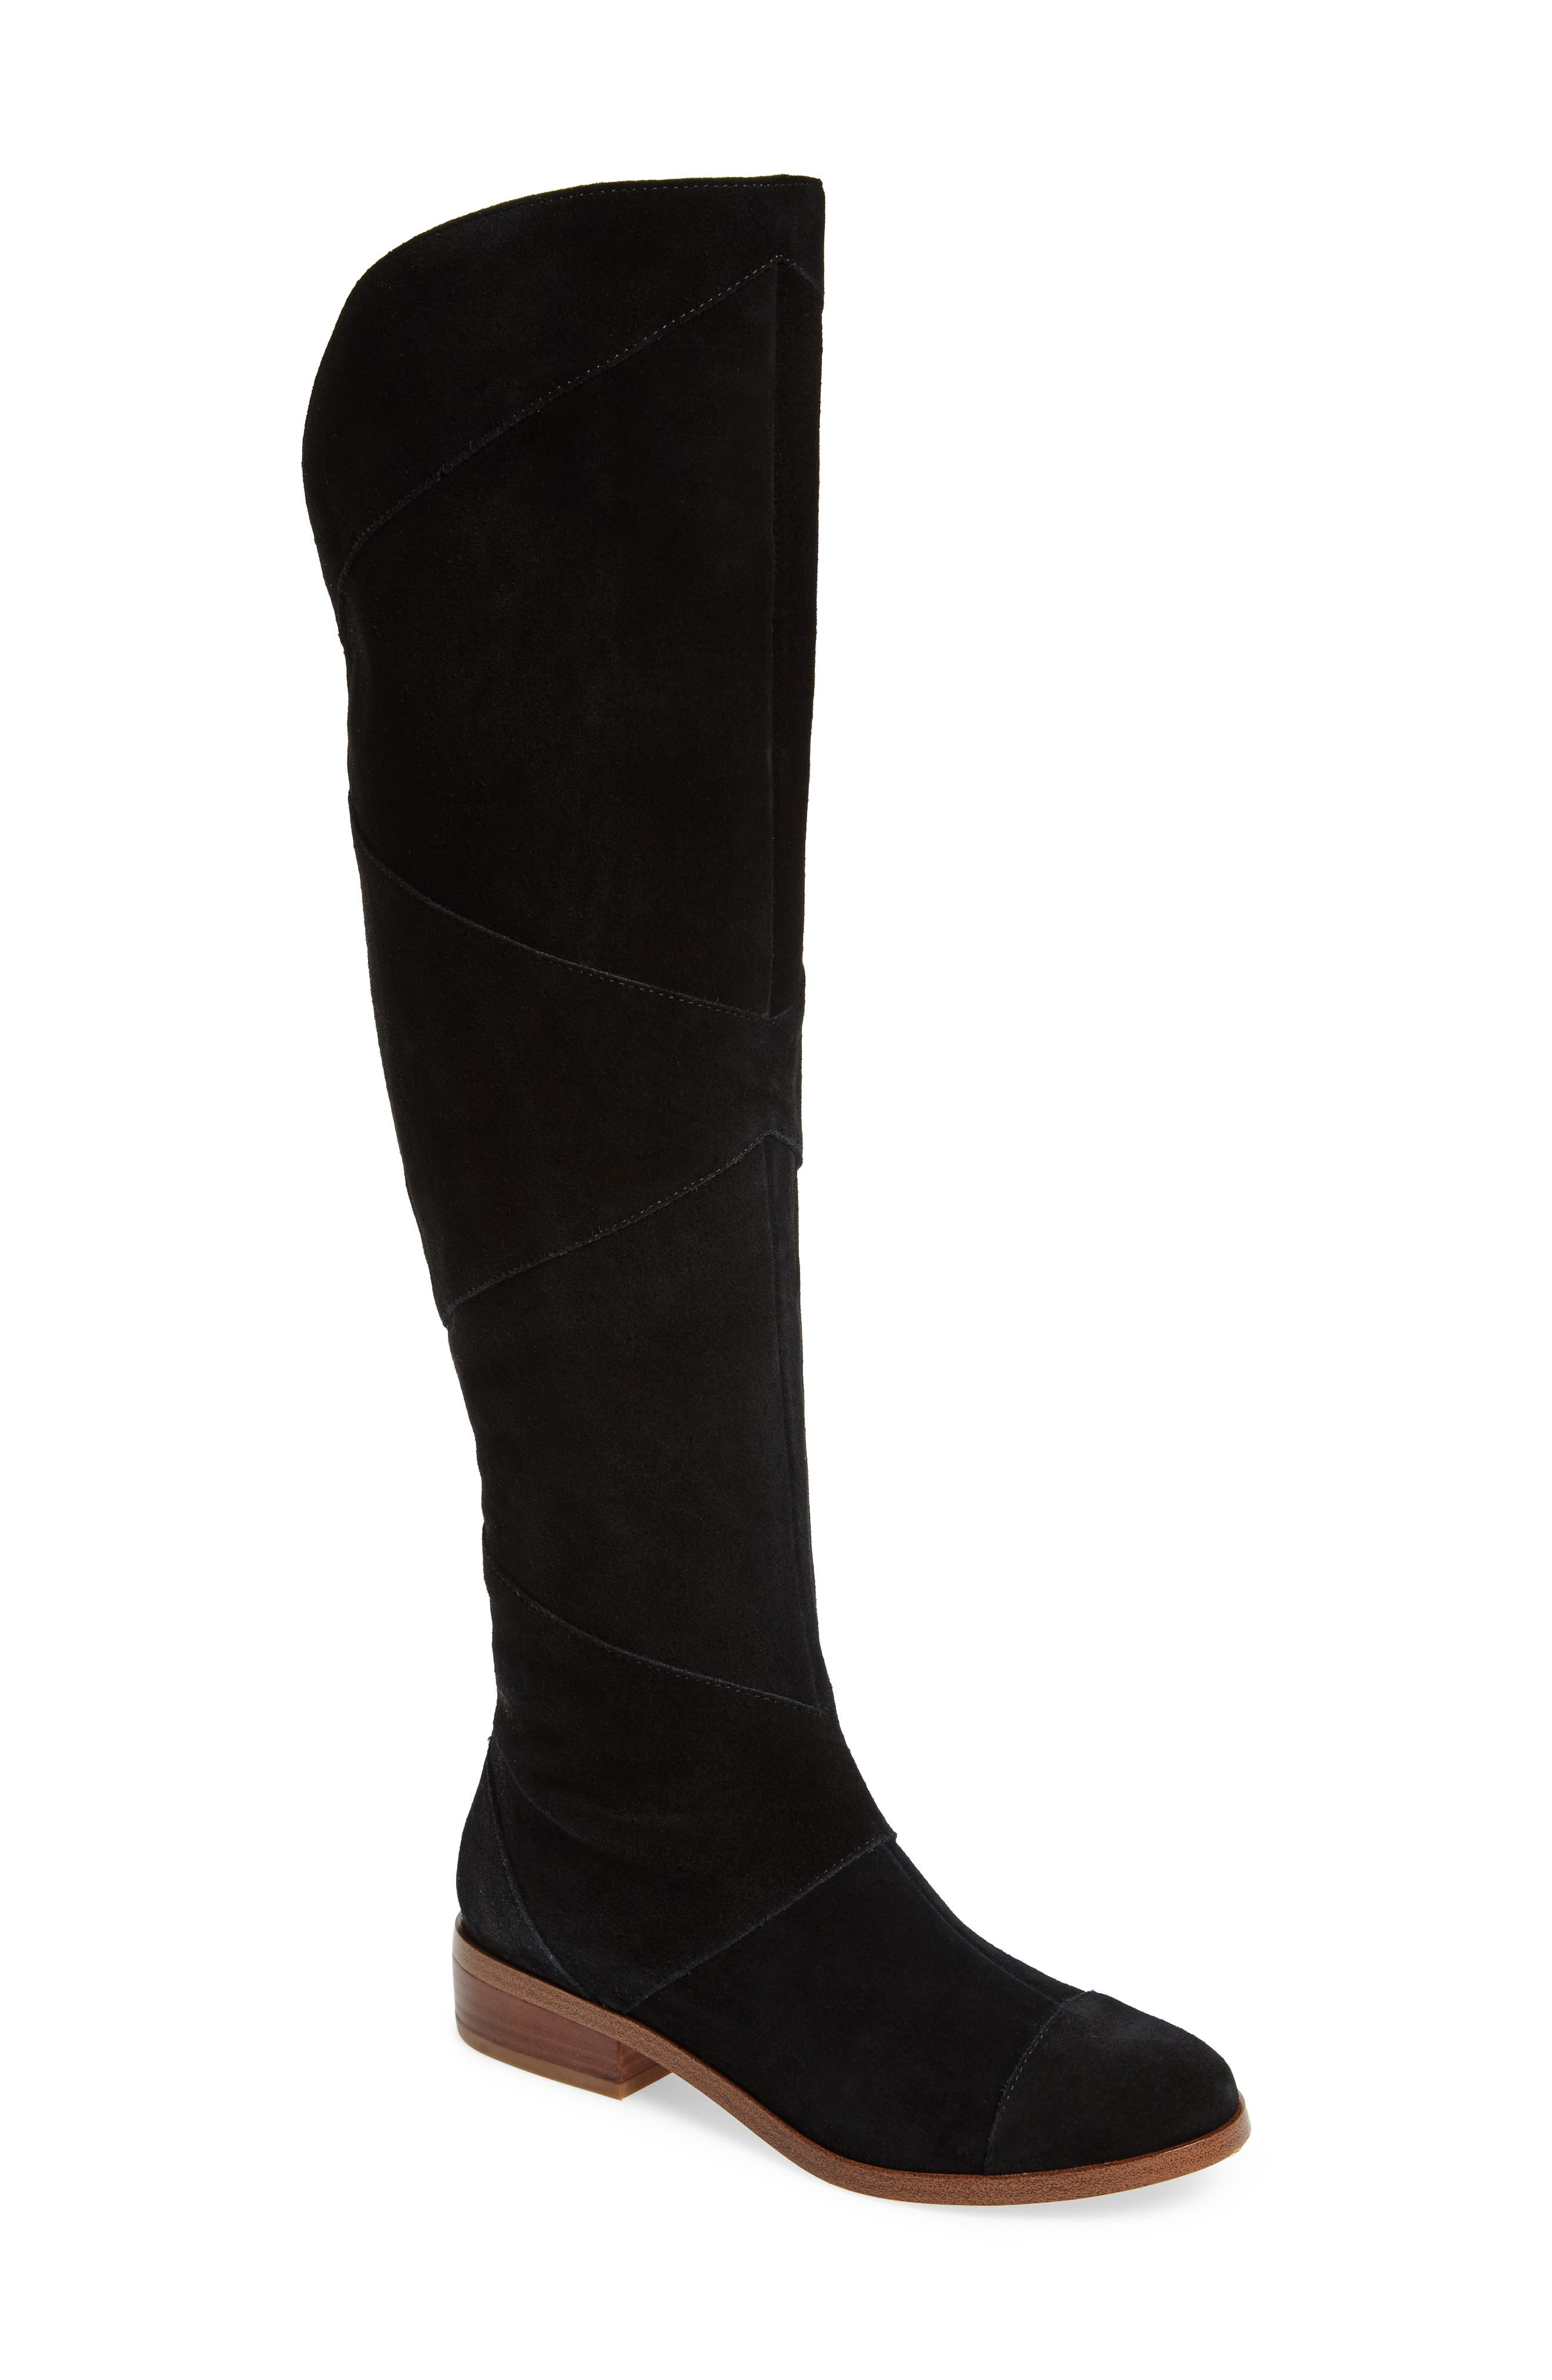 Sole Society Tiff Over The Knee Boot, Black